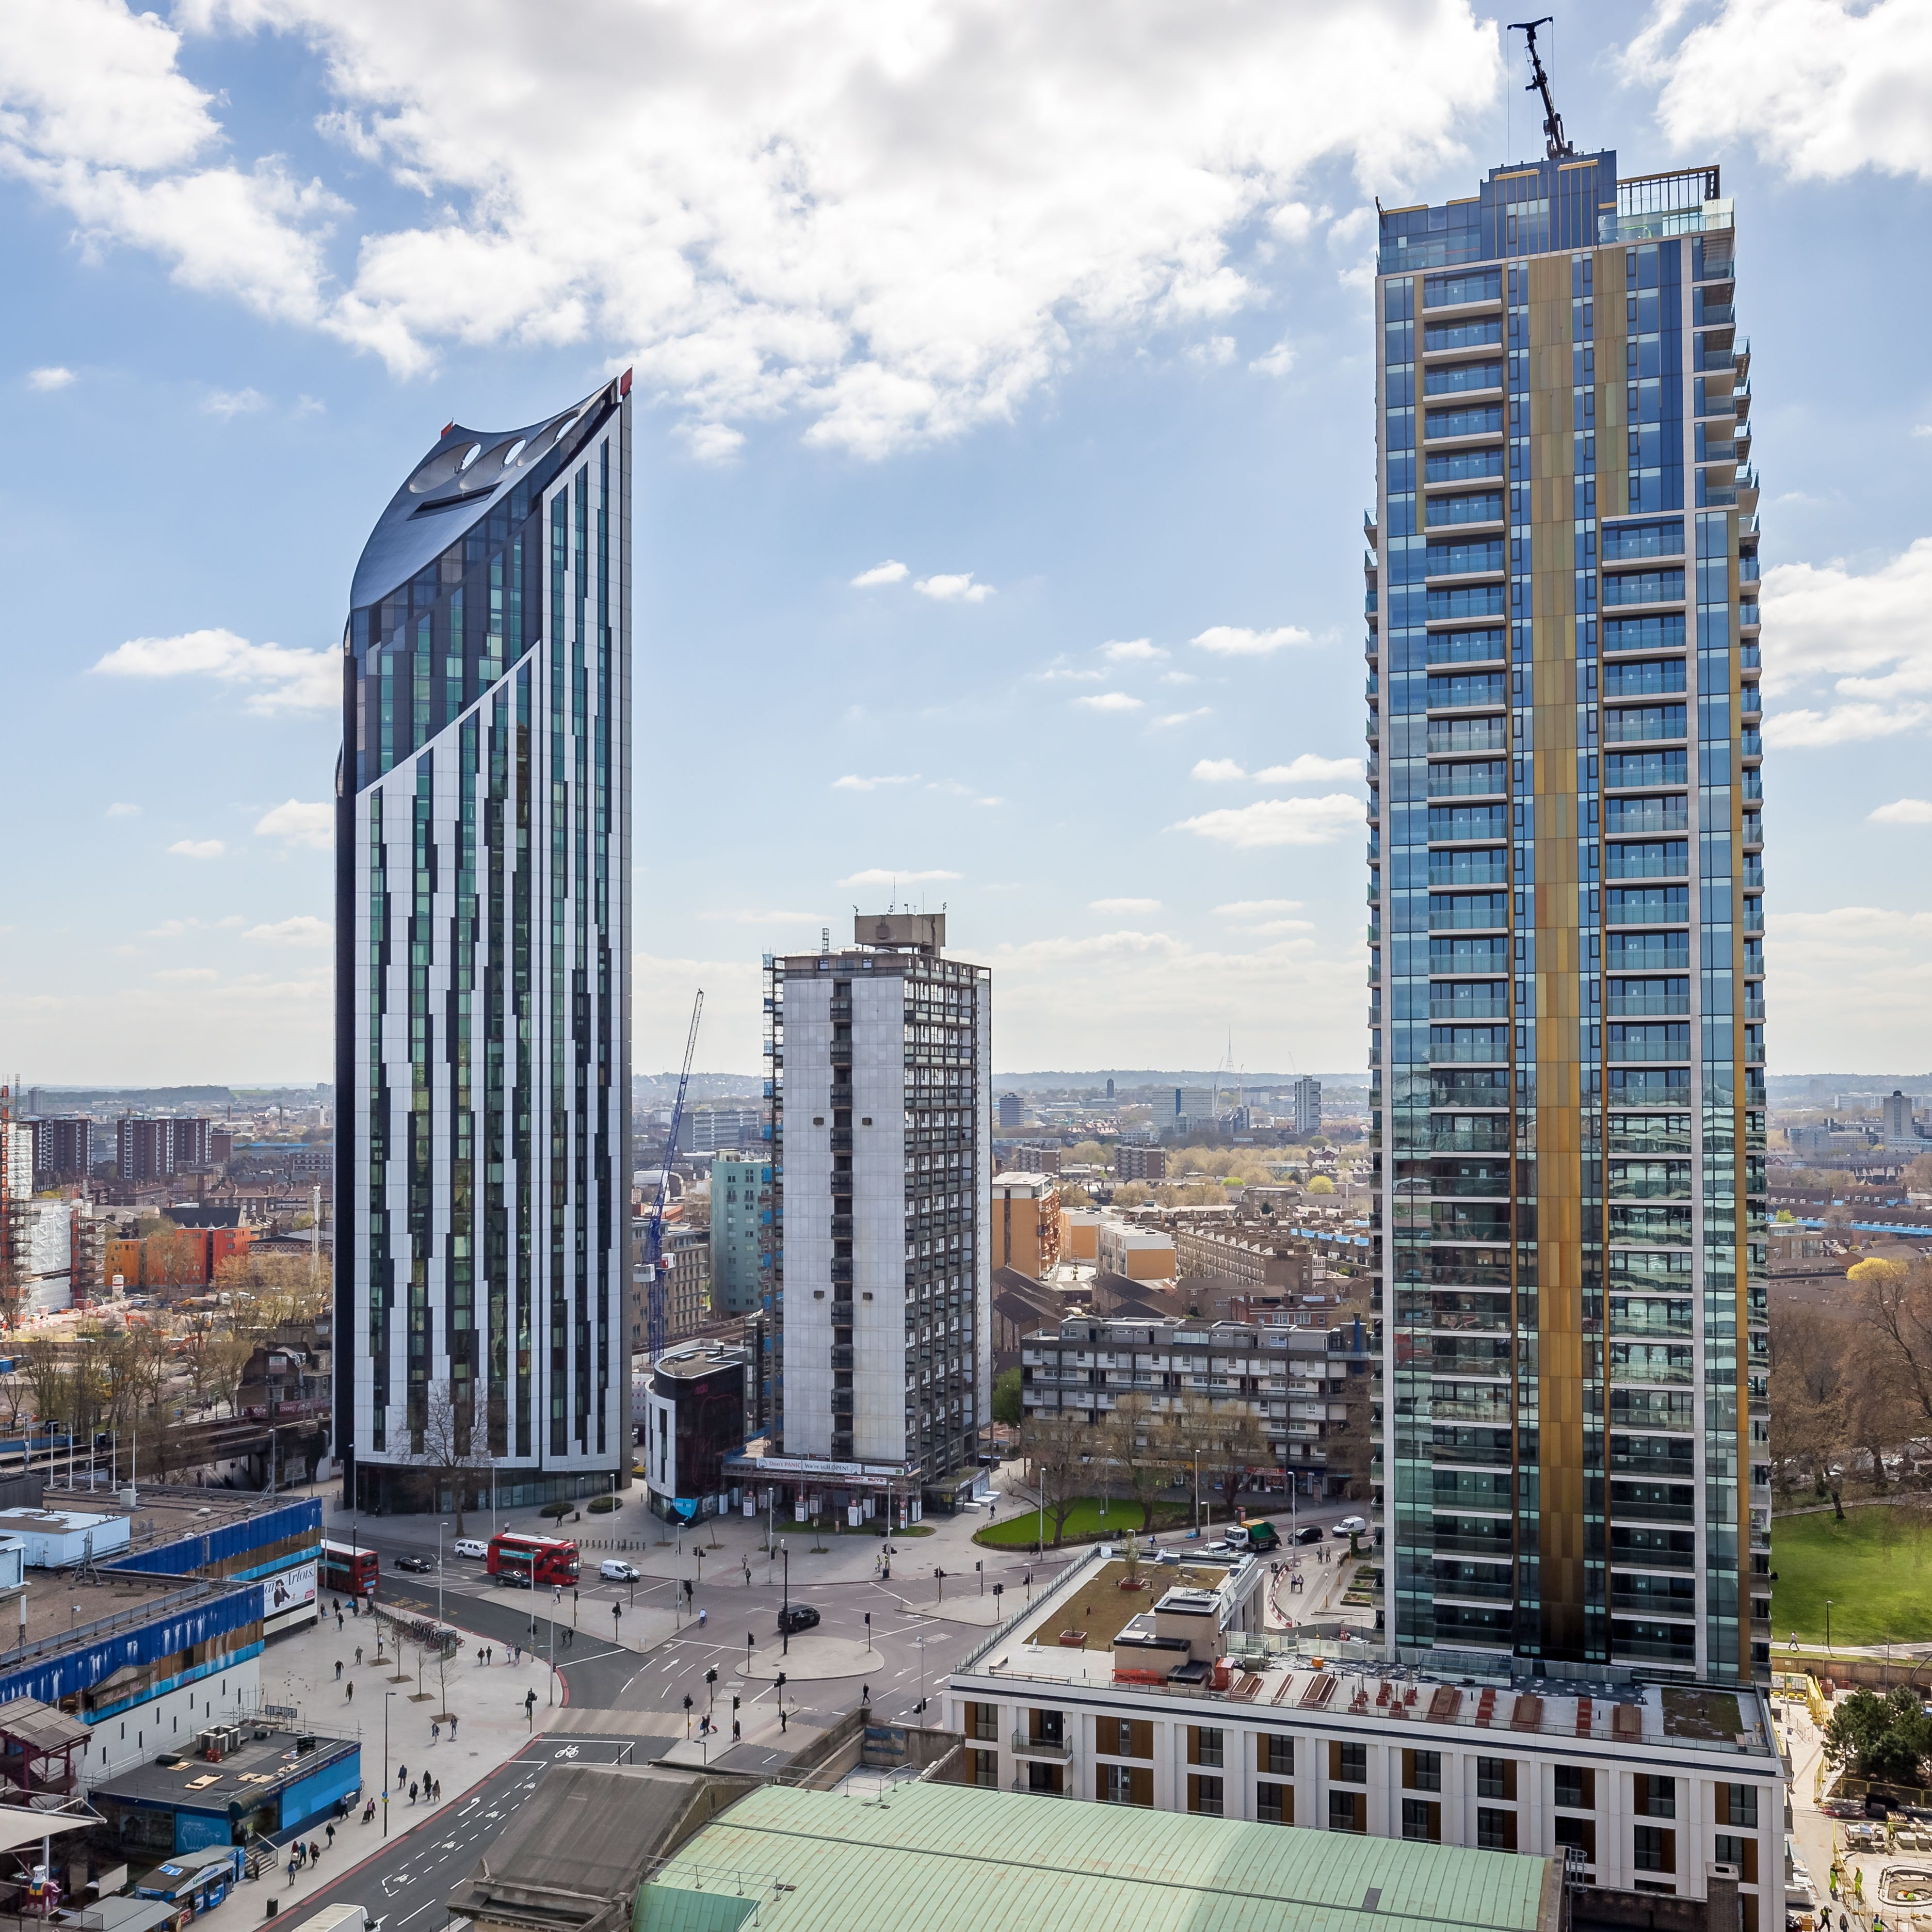 Skyline at Elephant and Castle